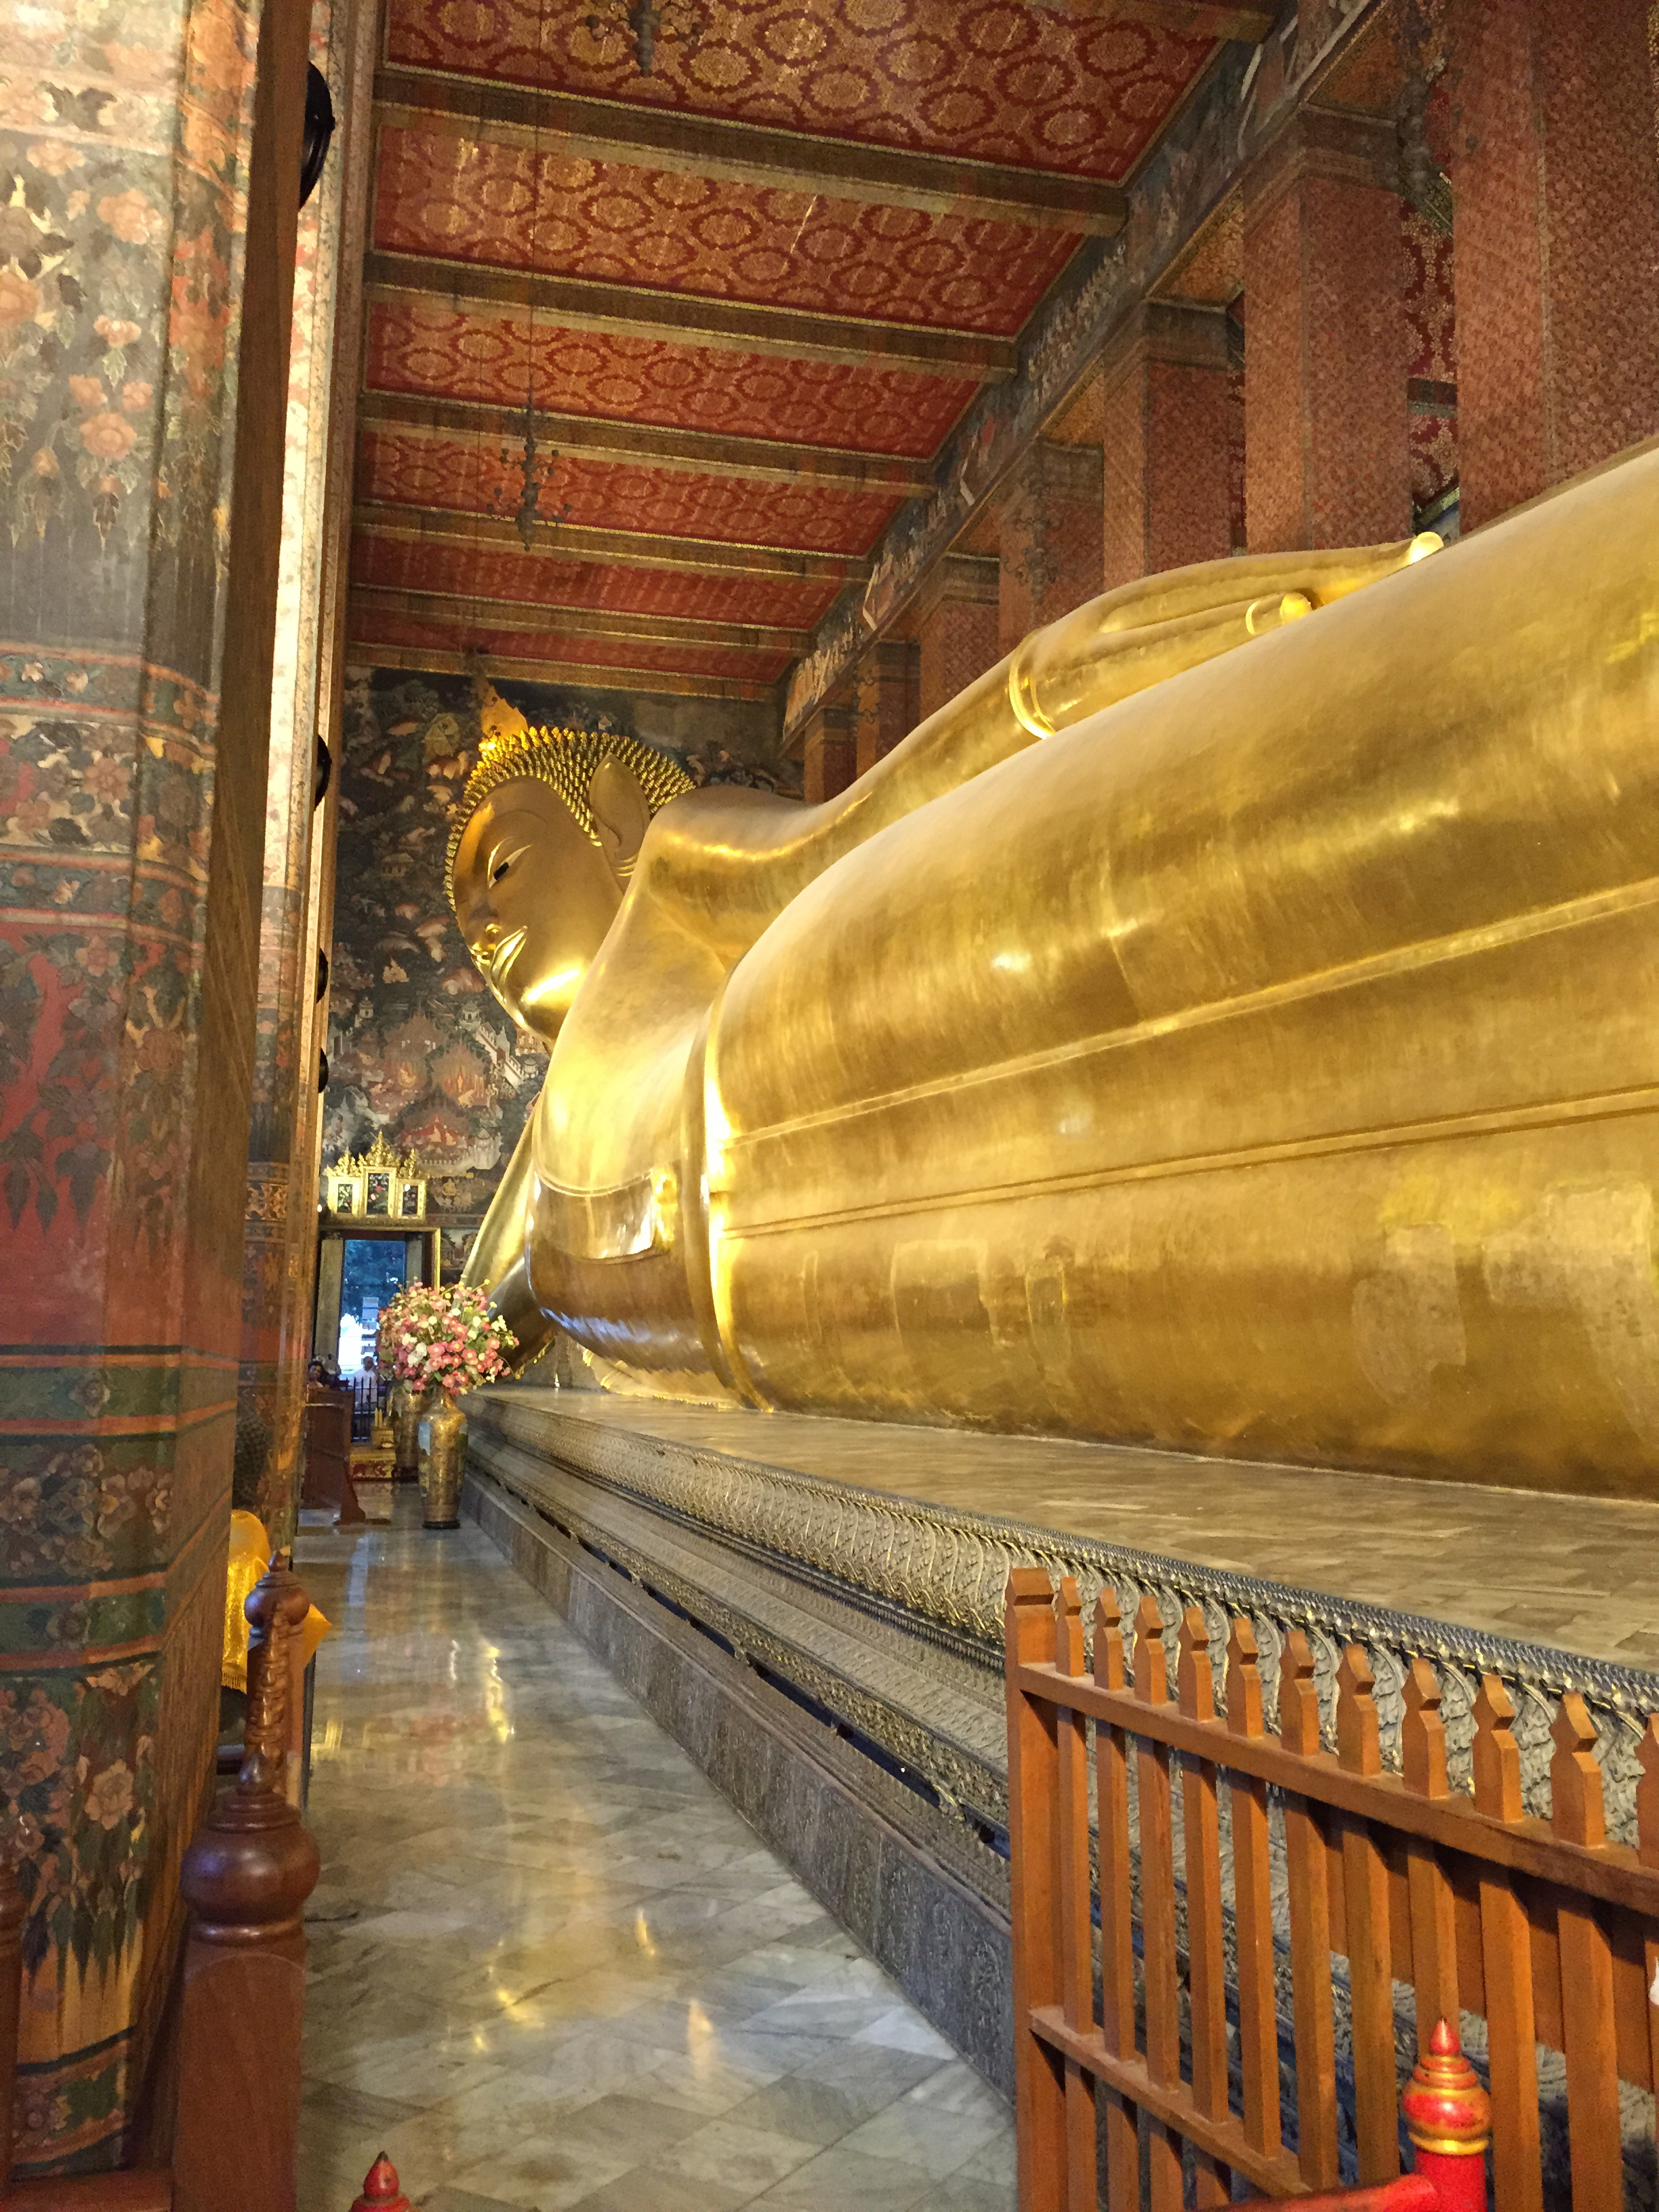 Large gold Buddha reclining on its right side.